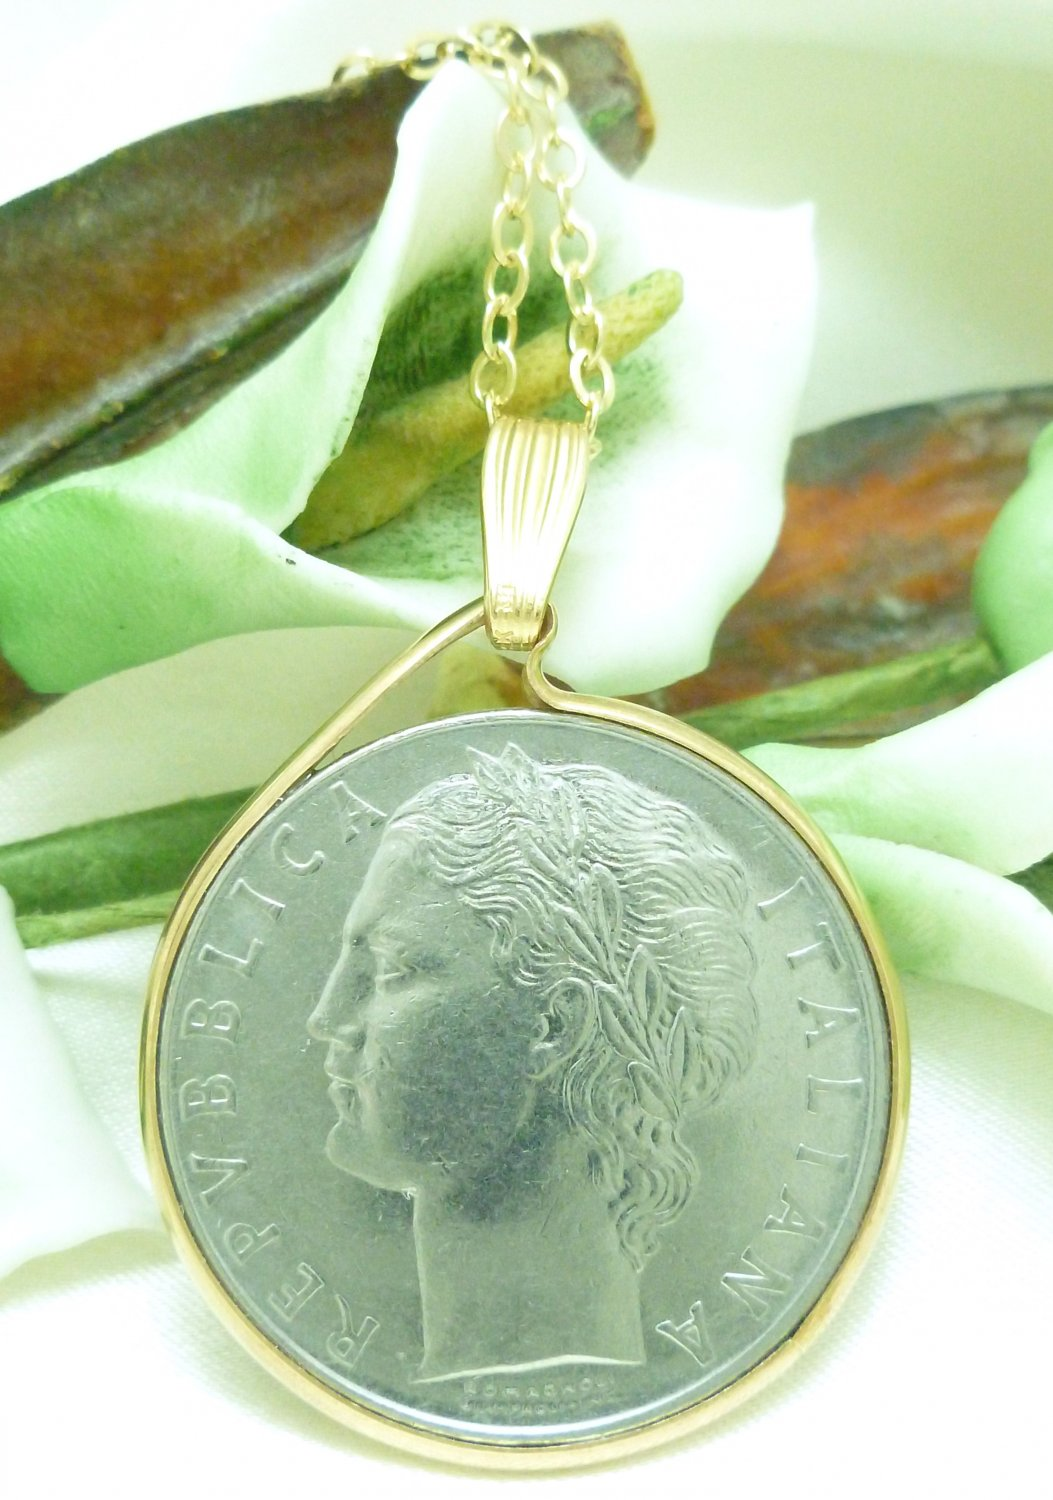 Italian 100 Lire 1976 Coin Pendant Gold Filled Bezel Chain Necklace Coin jewelry